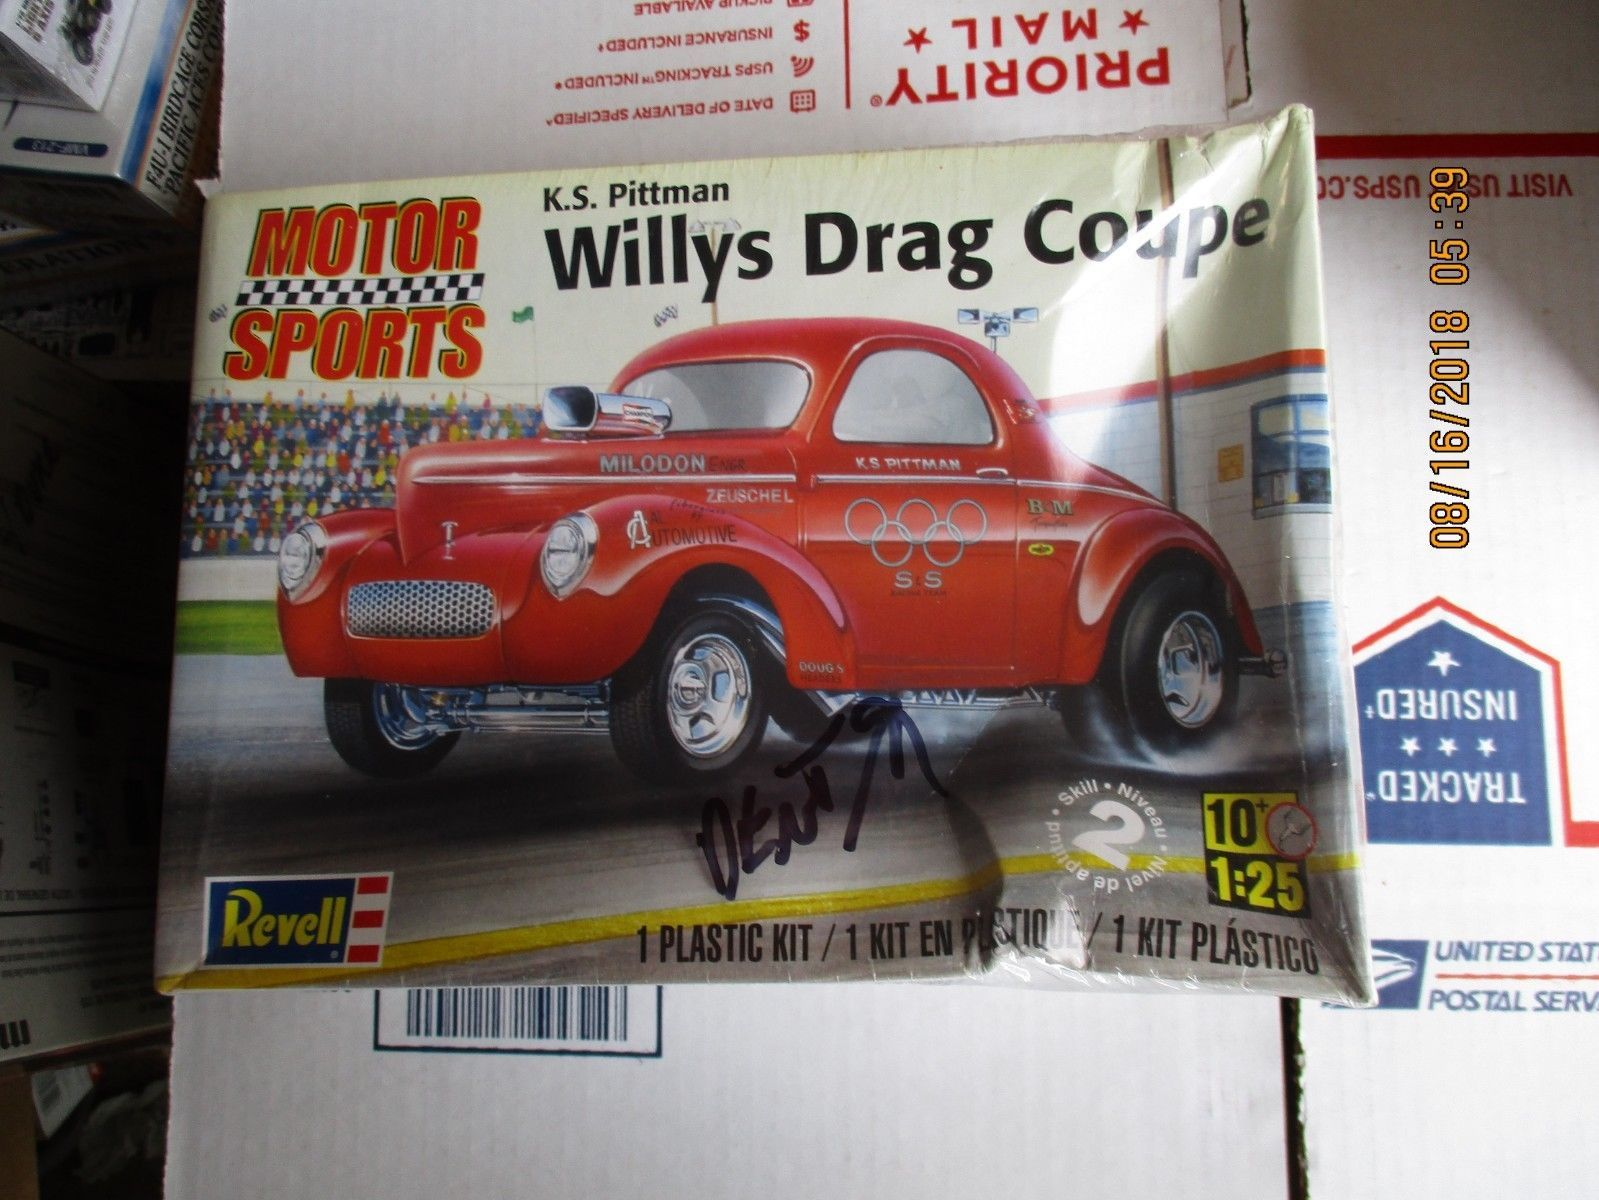 Revell Willys Drag Gasser Coupe K.S. Pittman 1/25 scale